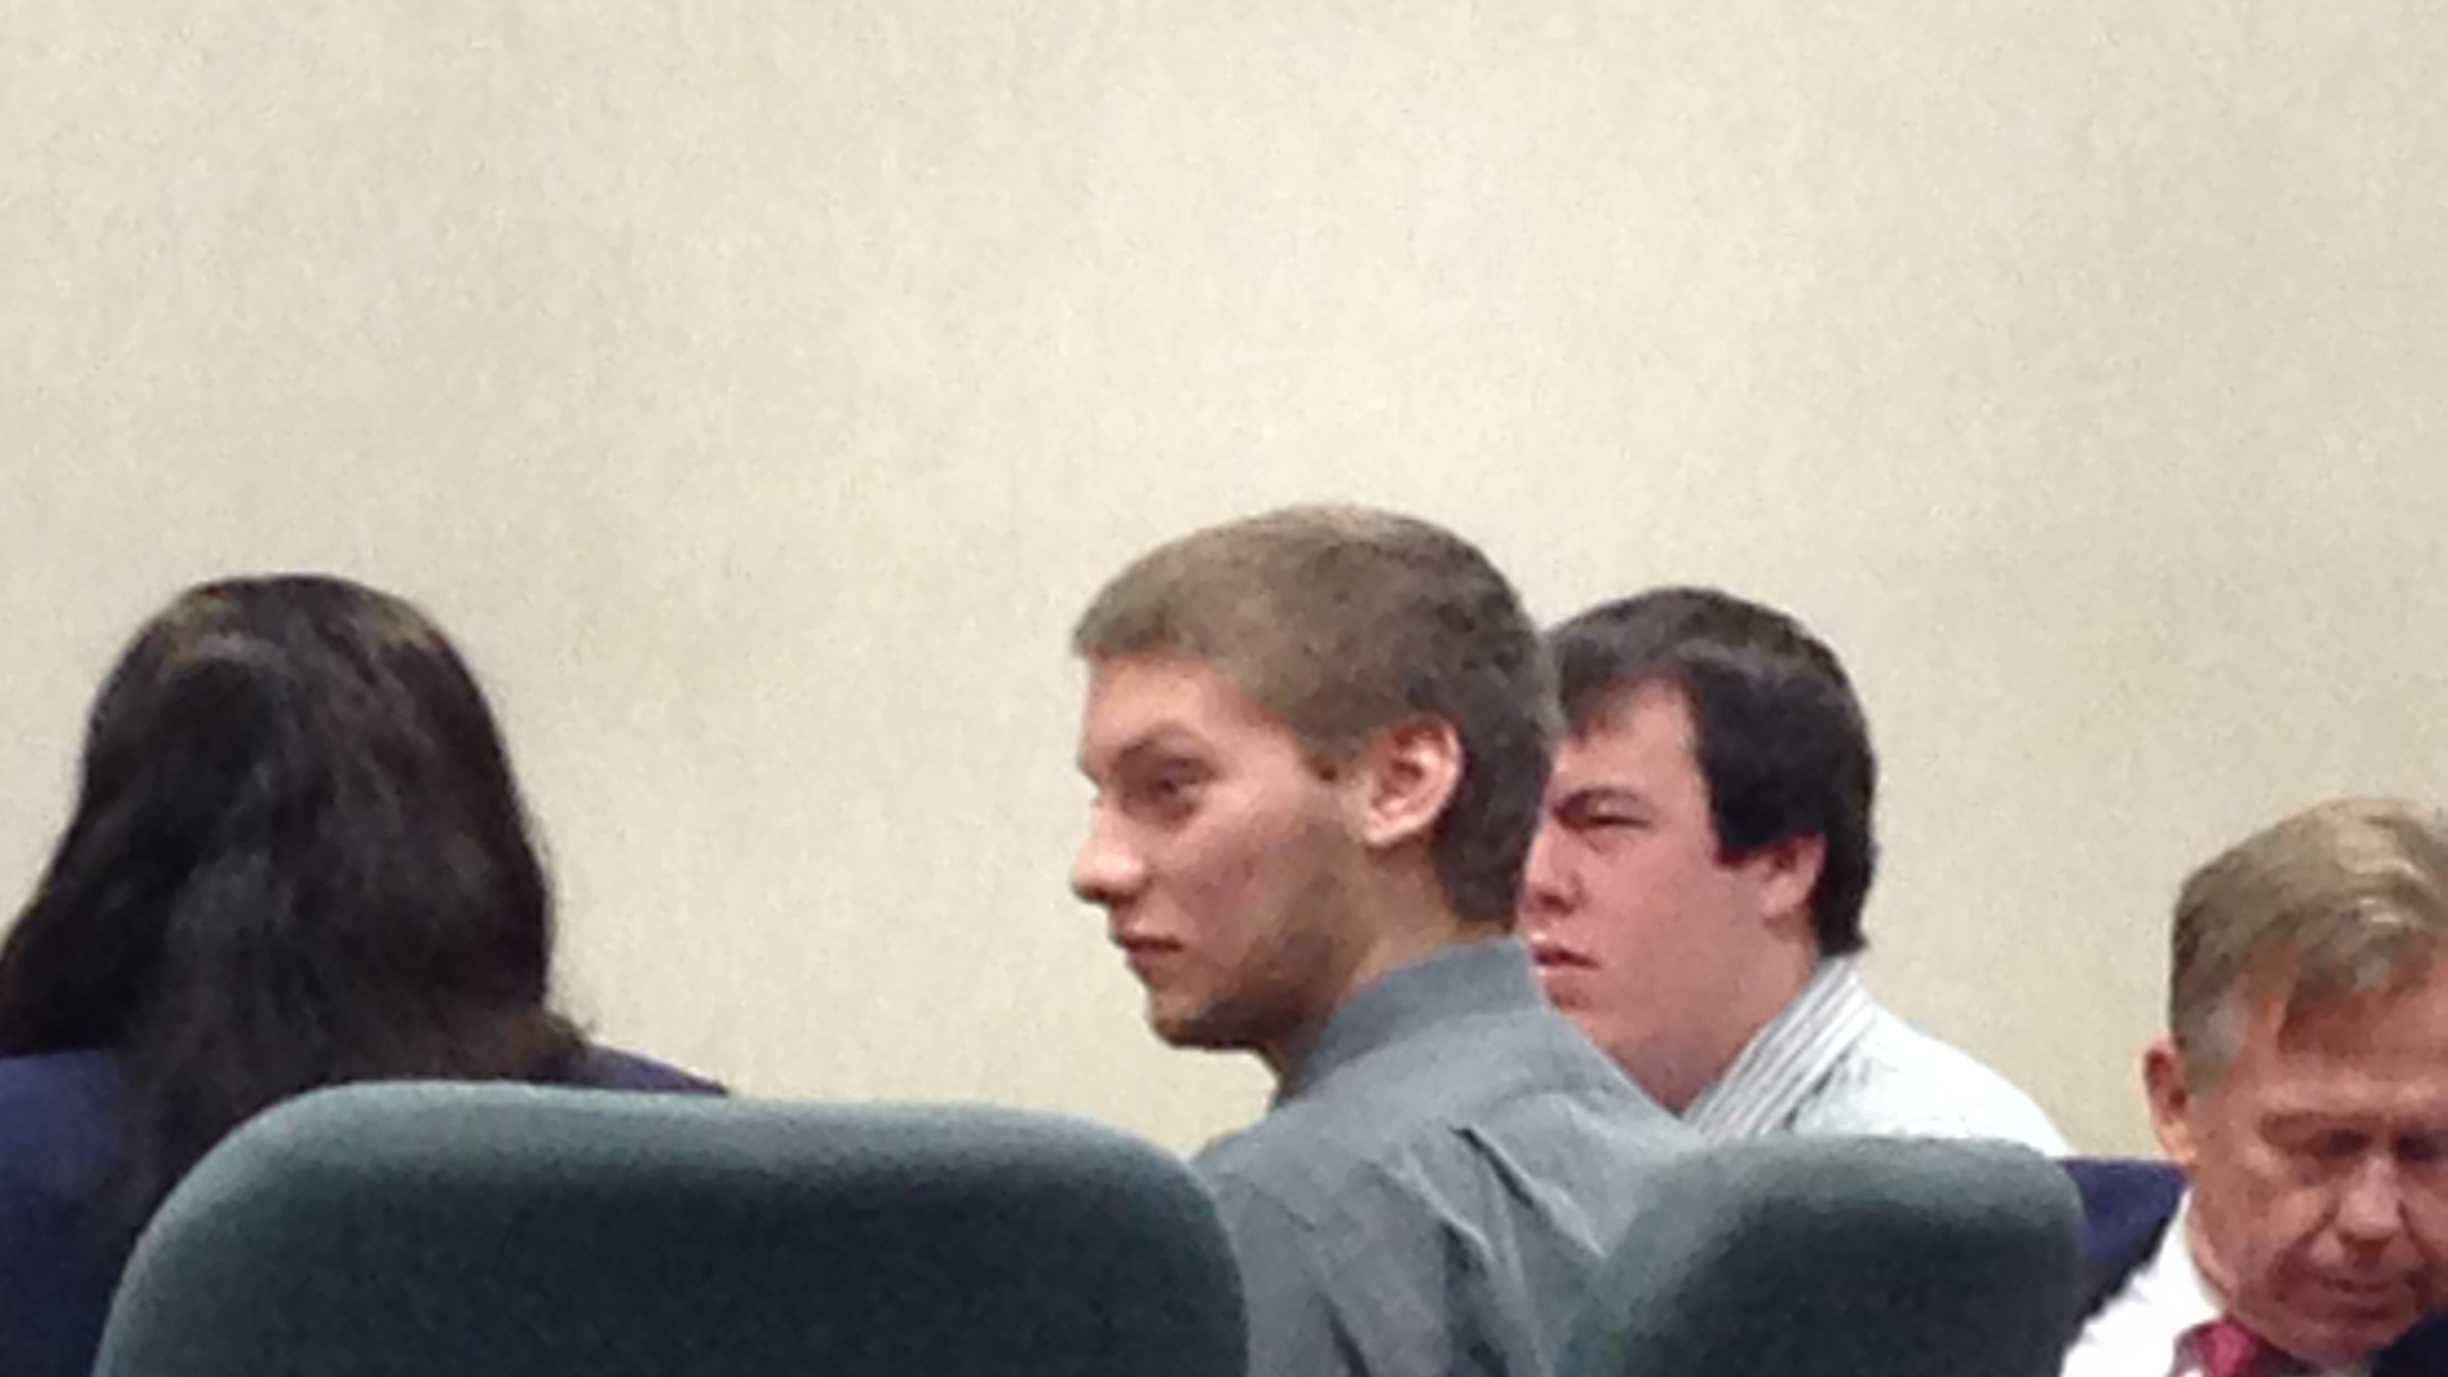 Colby Darling , left, and Brian Lasell at Tuesday's sentencing in Burlington.